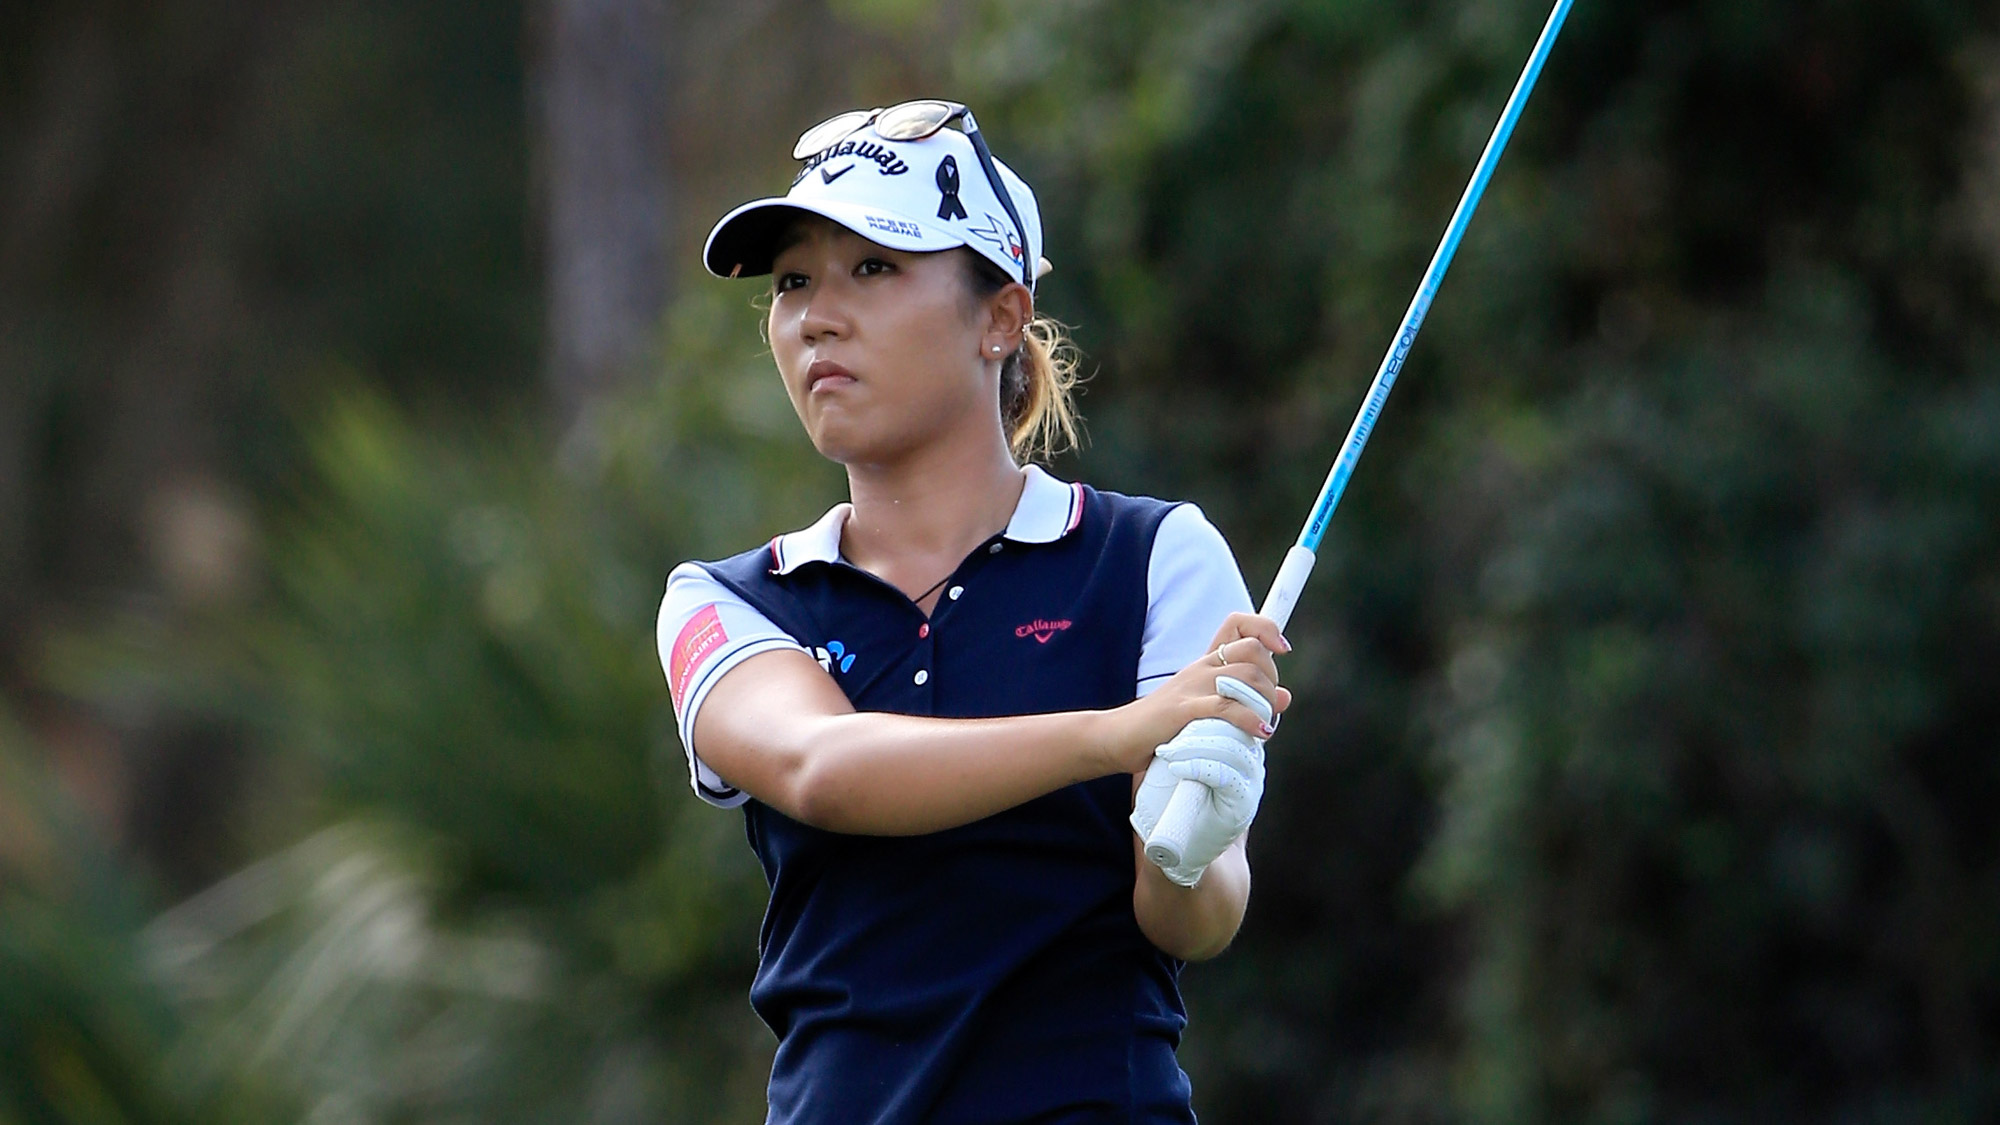 Lydia Ko of New Zealand plays a shot on the sixth hole during the first round of the CME Group Tour Championship at Tiburon Golf Club